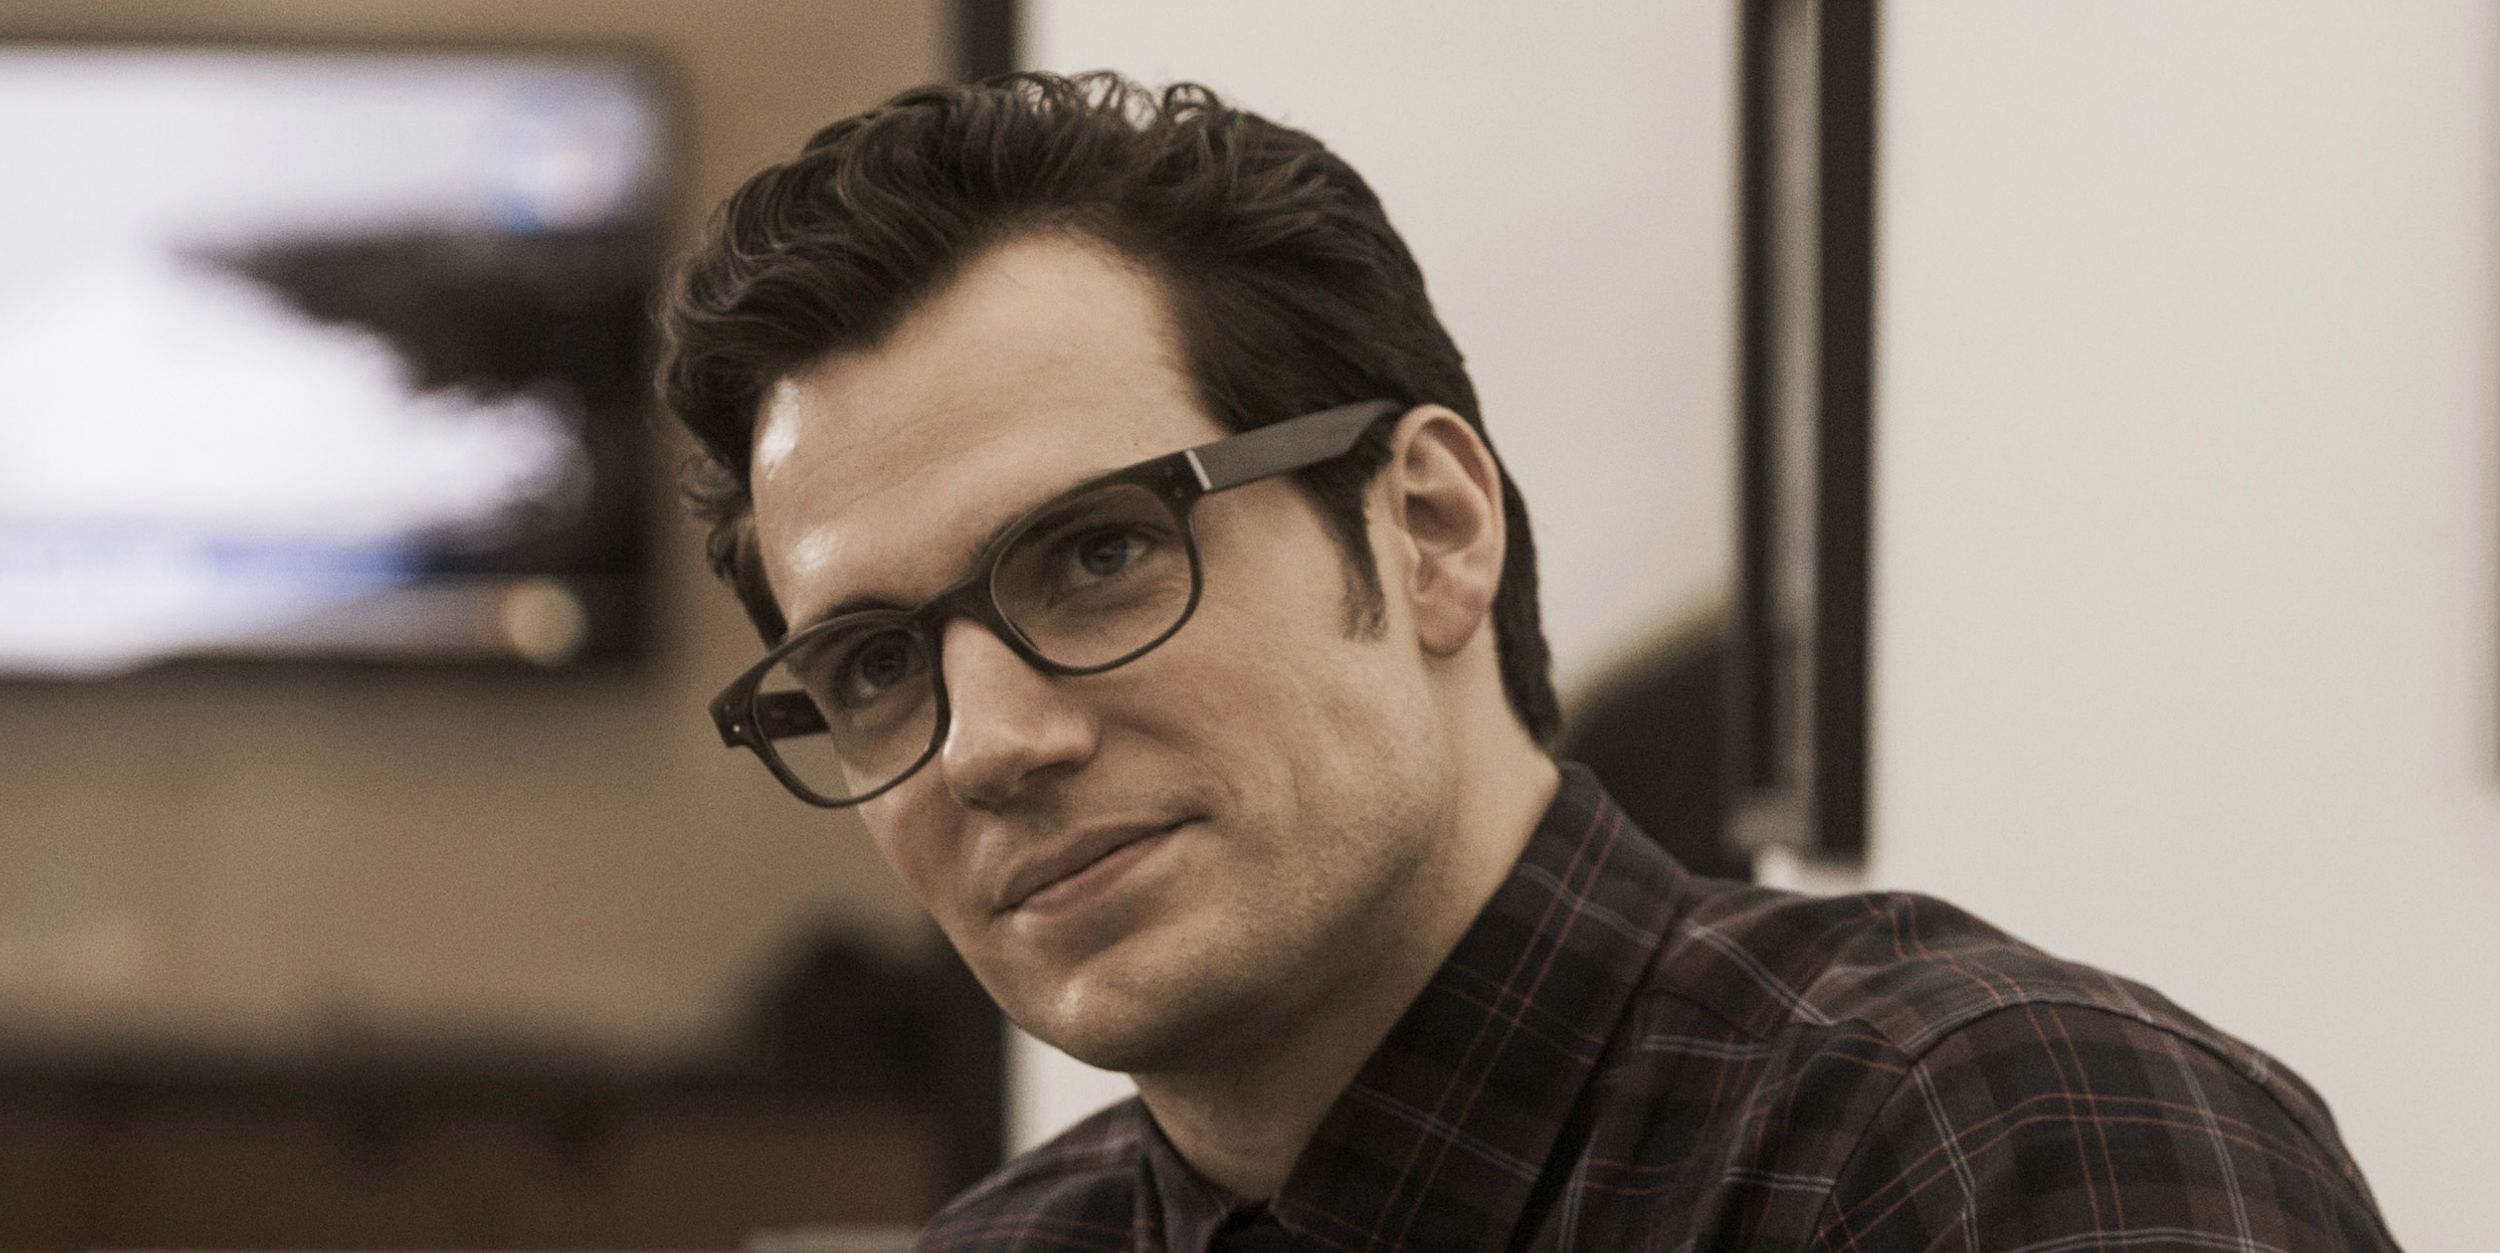 https://static0.srcdn.com/wordpress/wp-content/uploads/2017/12/Henry-Cavill-as-Clark-Kent-in-Batman-V-Superman.jpg